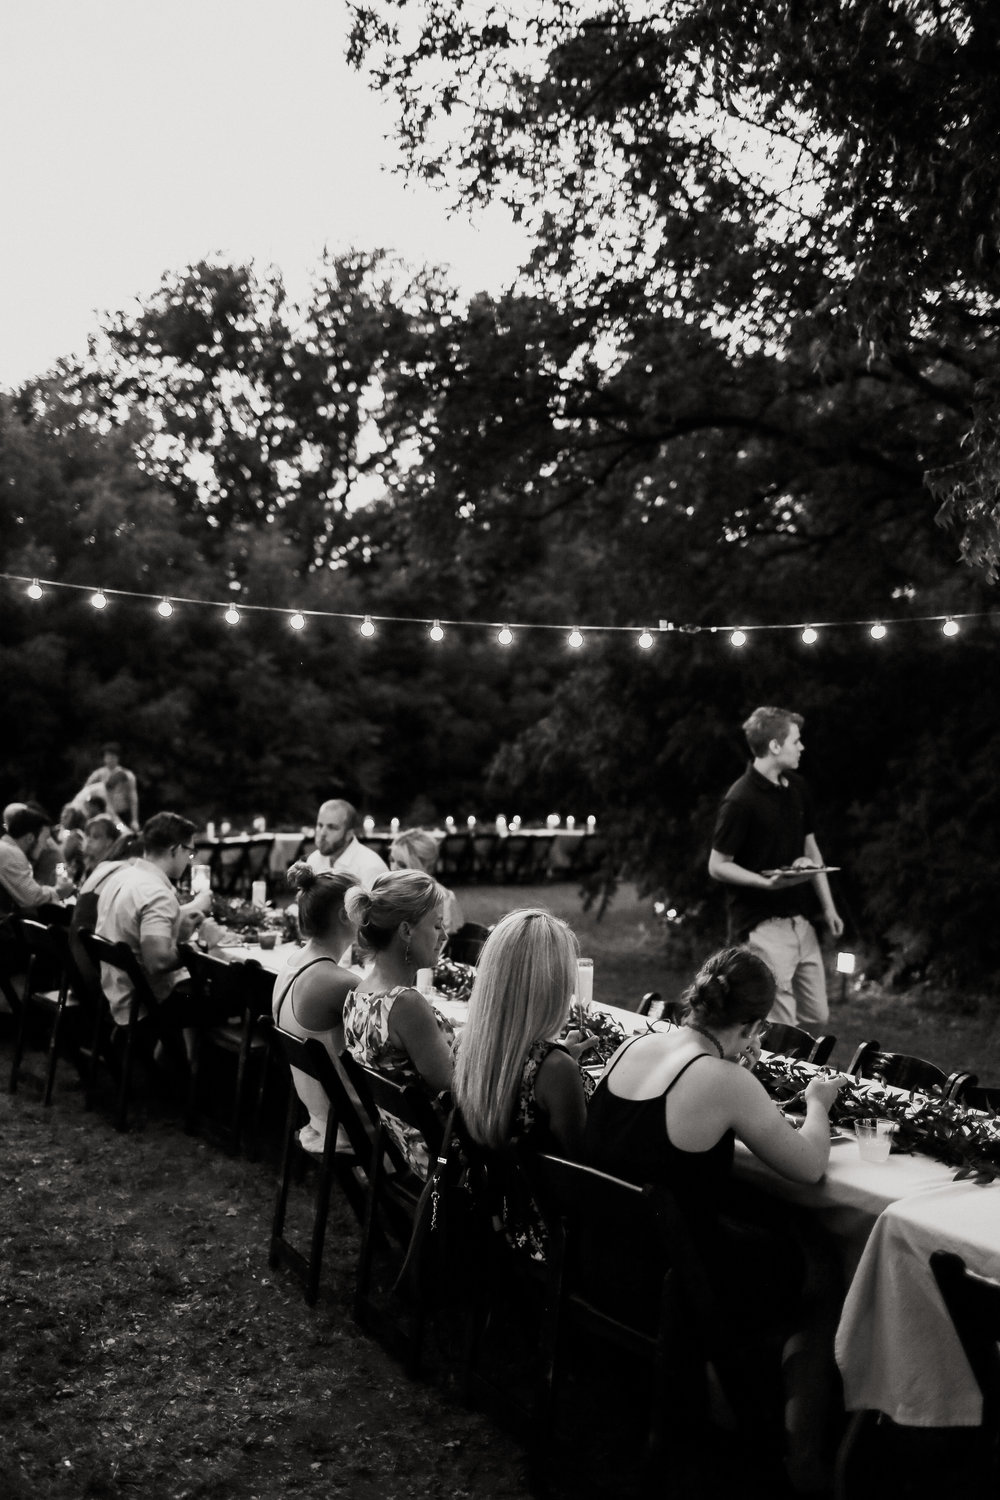 Backyard_Wedding_Oklahoma_MelissaMarshall_34.jpg